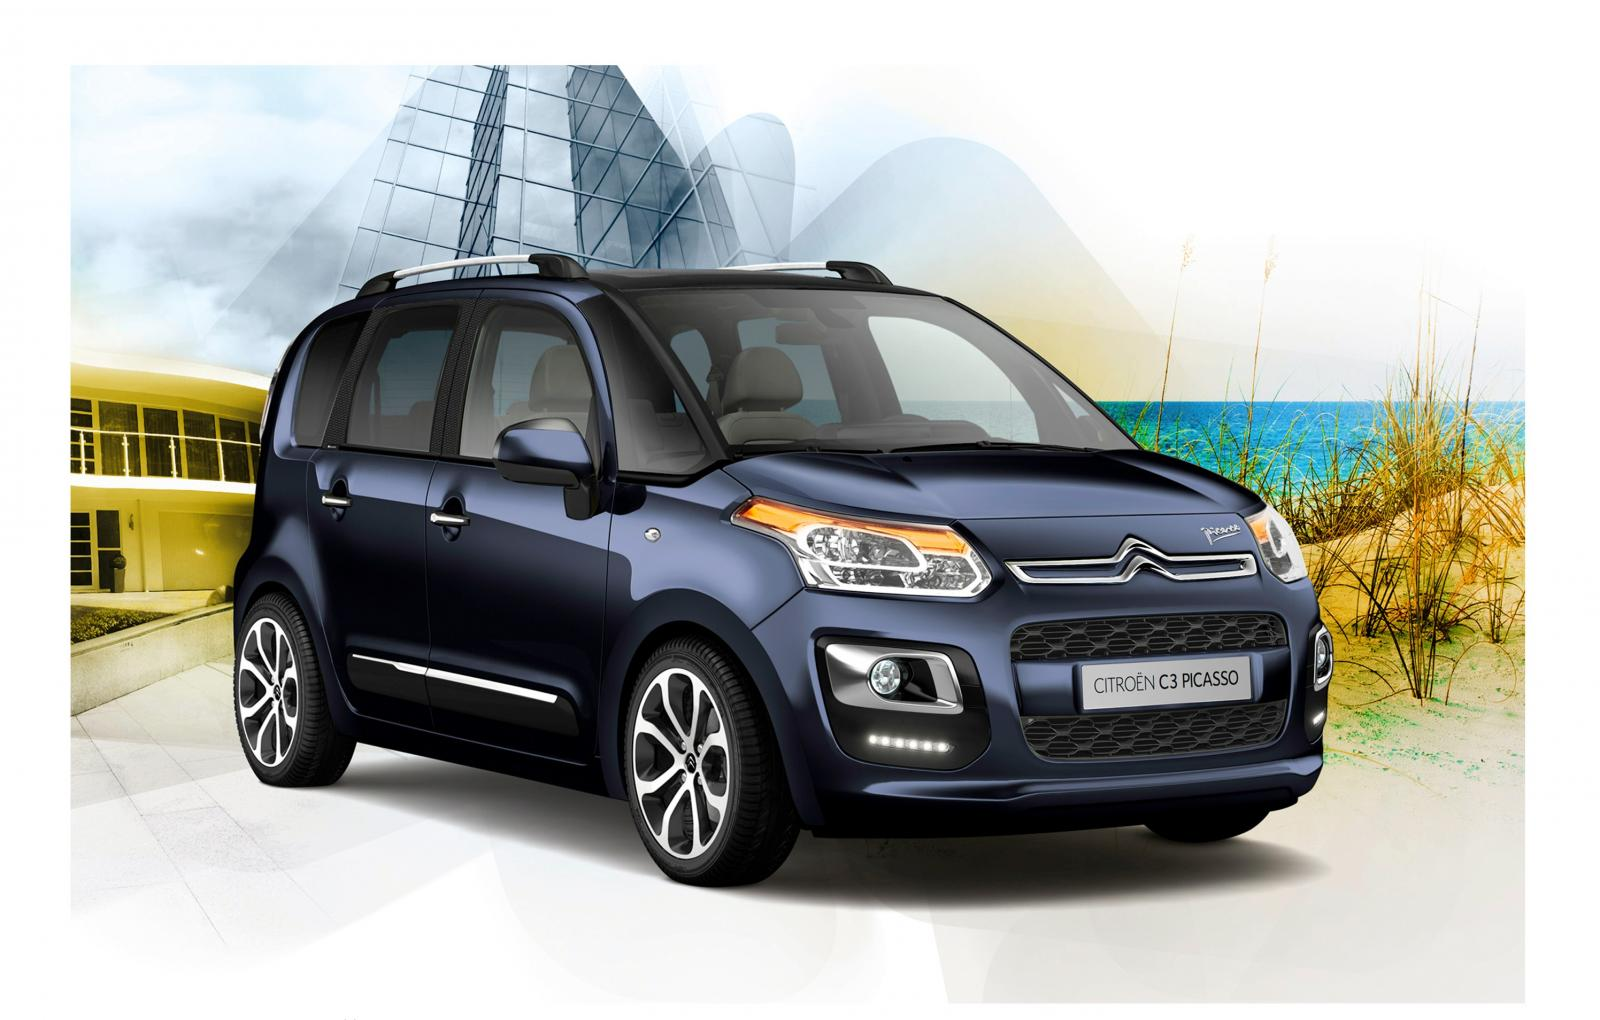 2013 citroen c3 picasso cars sketches. Black Bedroom Furniture Sets. Home Design Ideas